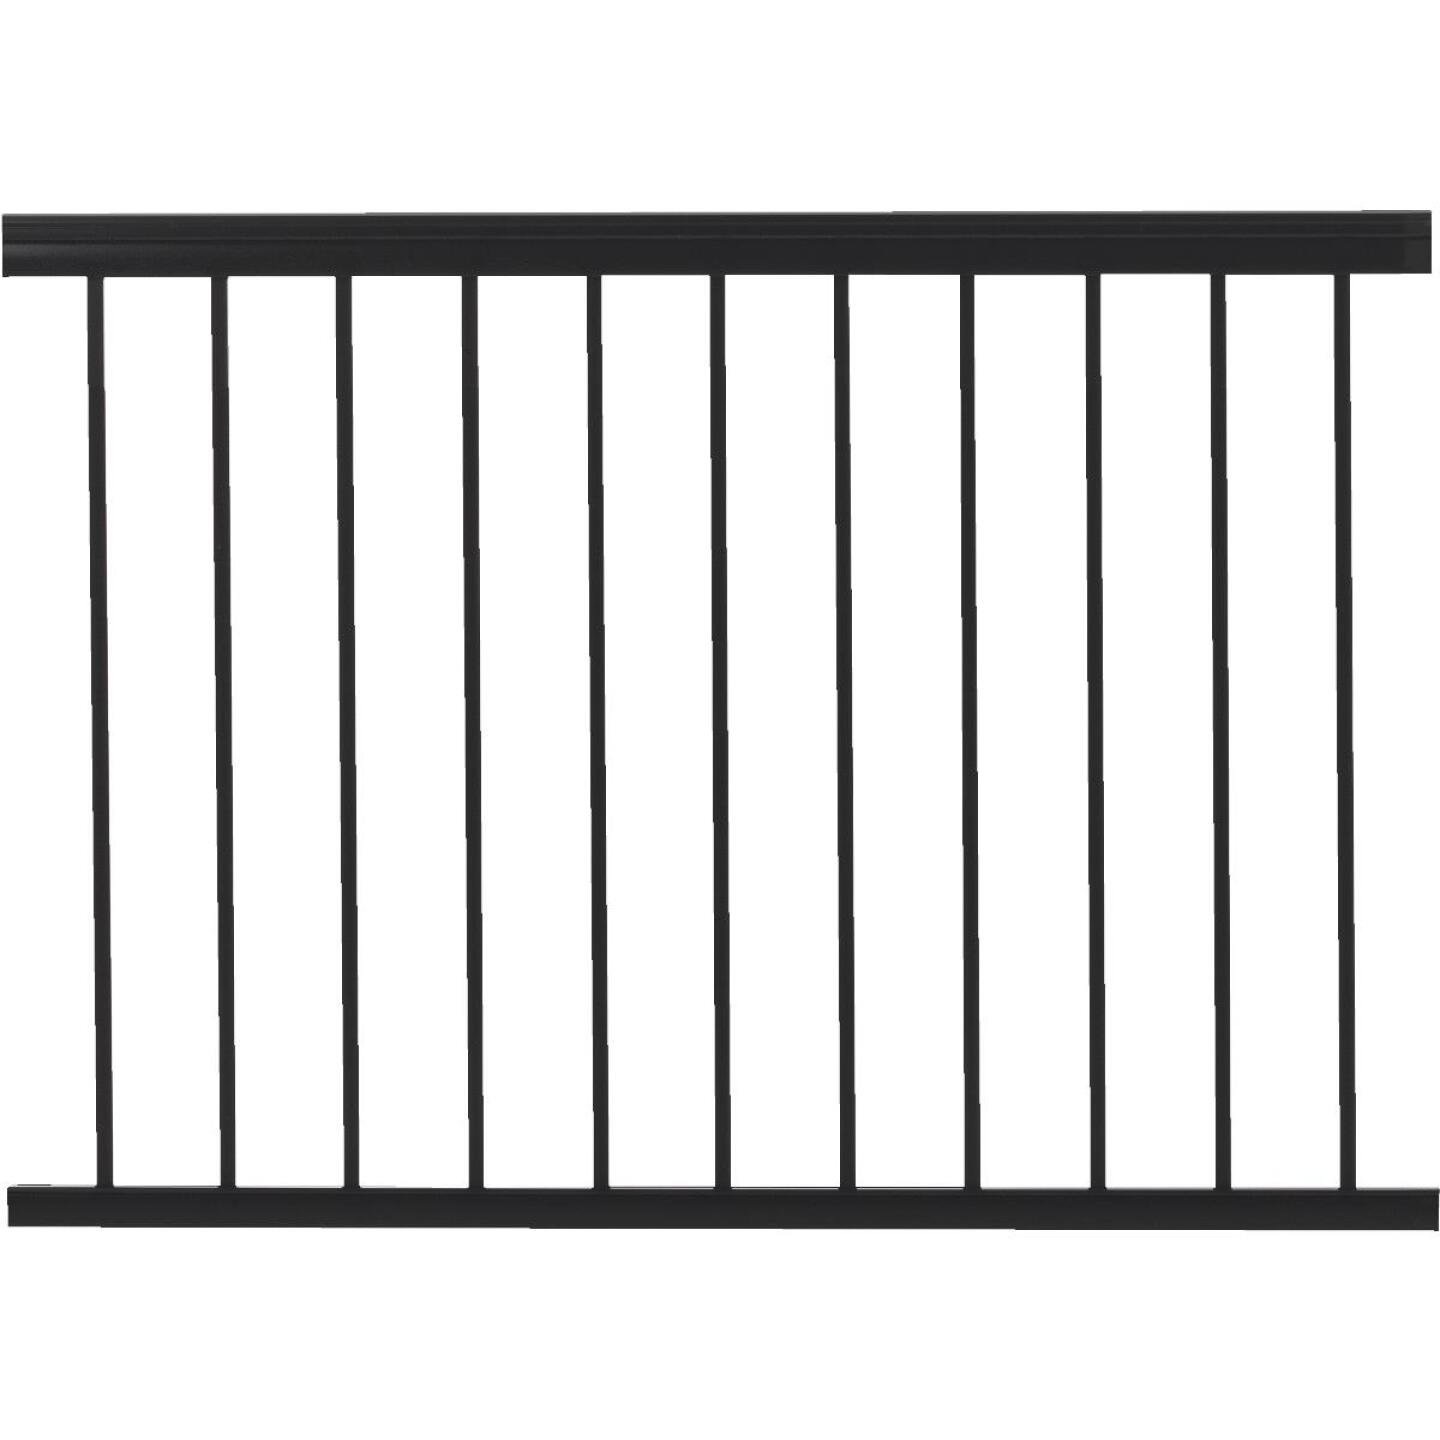 Gilpin Summit 36 In. H. x 4 Ft. L. Black Aluminum Railing Image 1